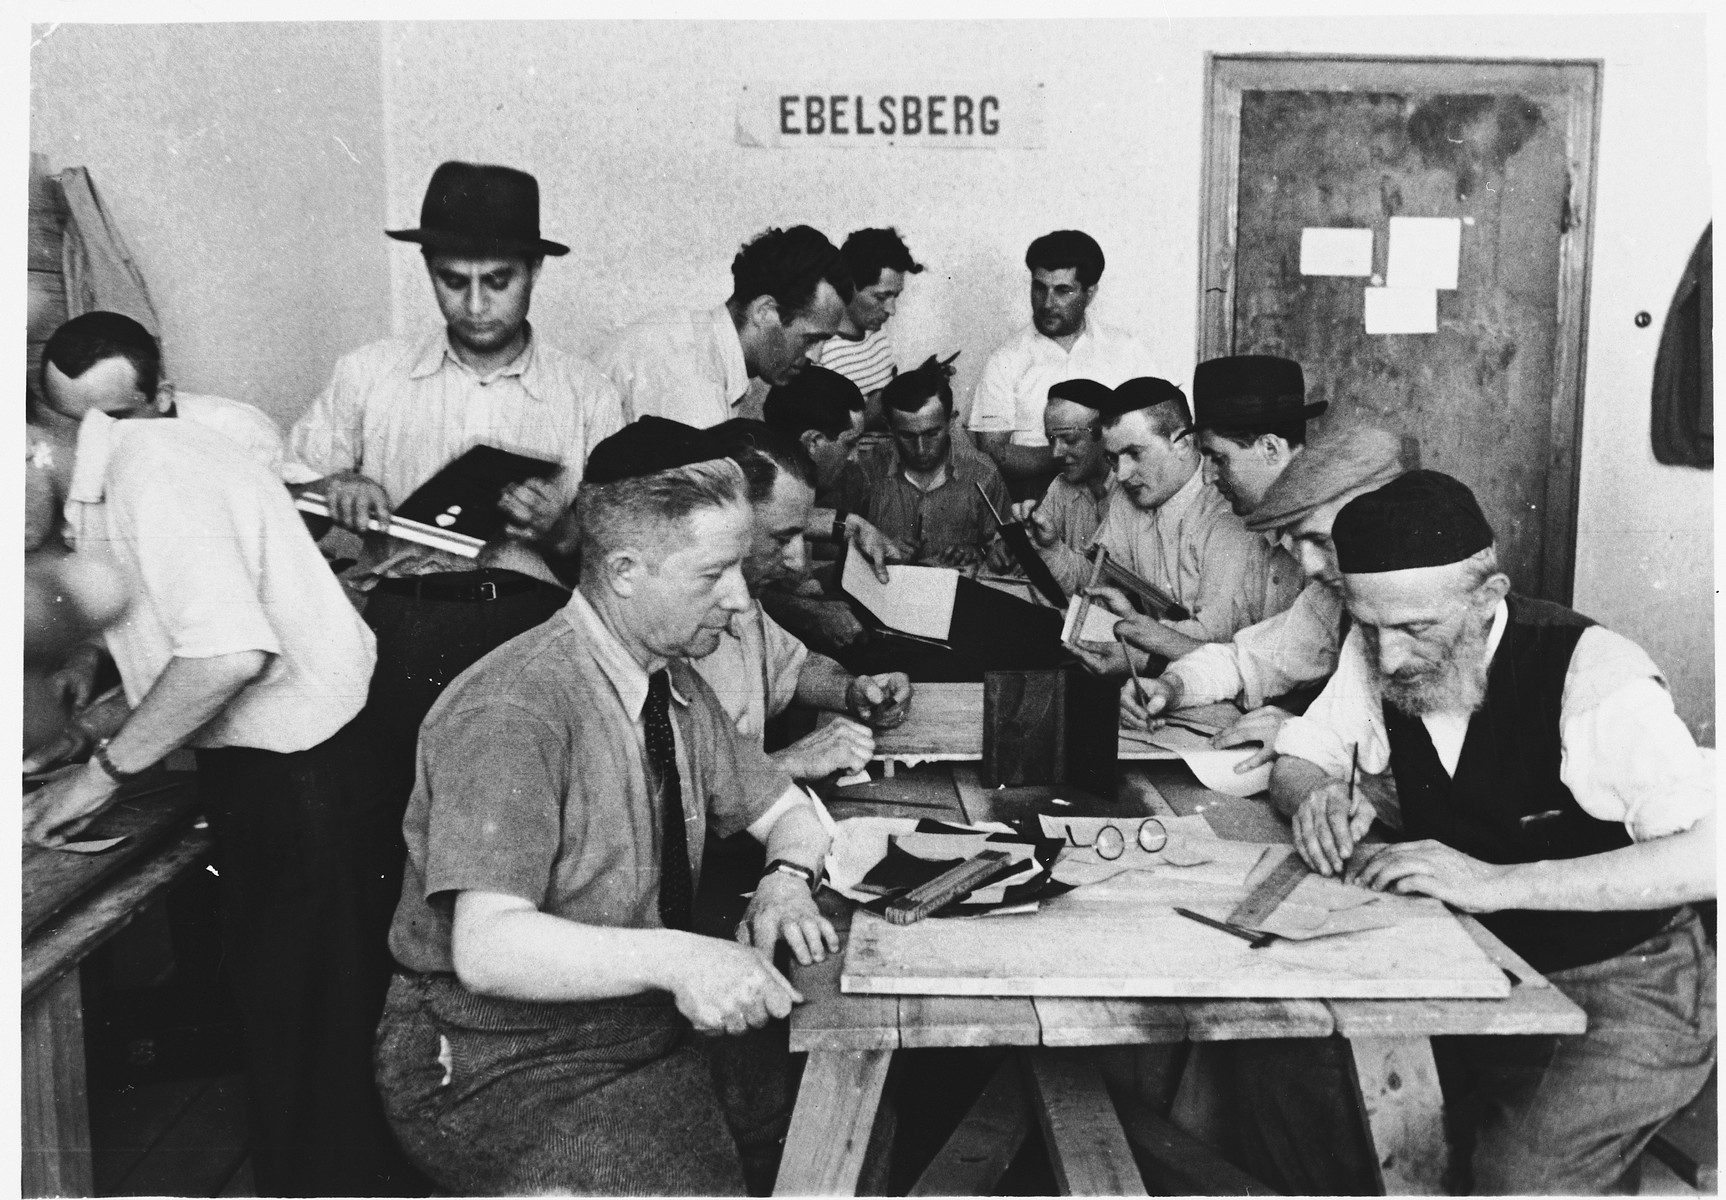 Religious Jews work in an ORT vocational workshop in the Ebelsberg displaced persons' camp.